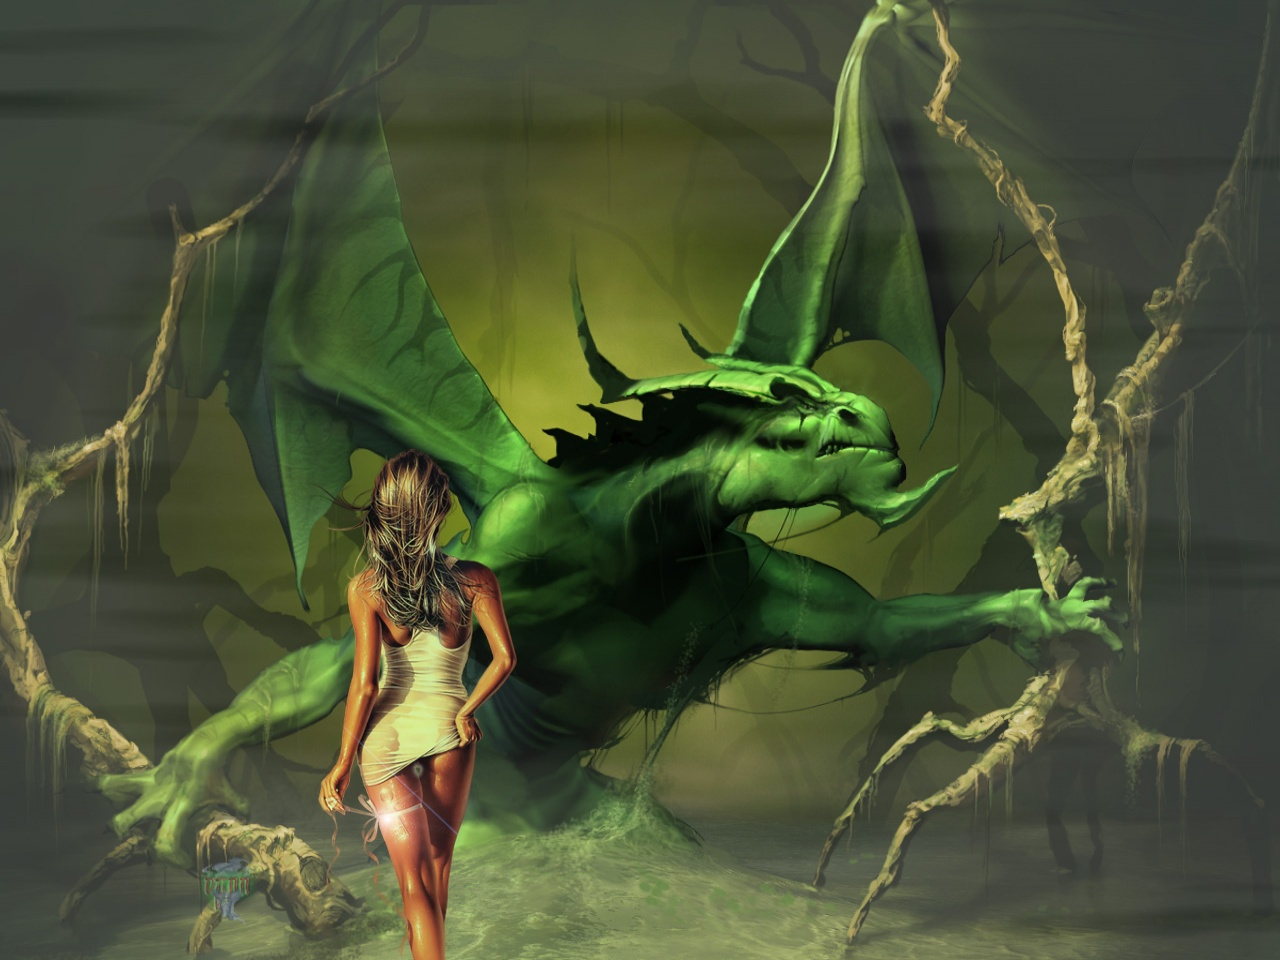 Free psp themes wallpaper dragon wallpapers - Dragon backgrounds ...